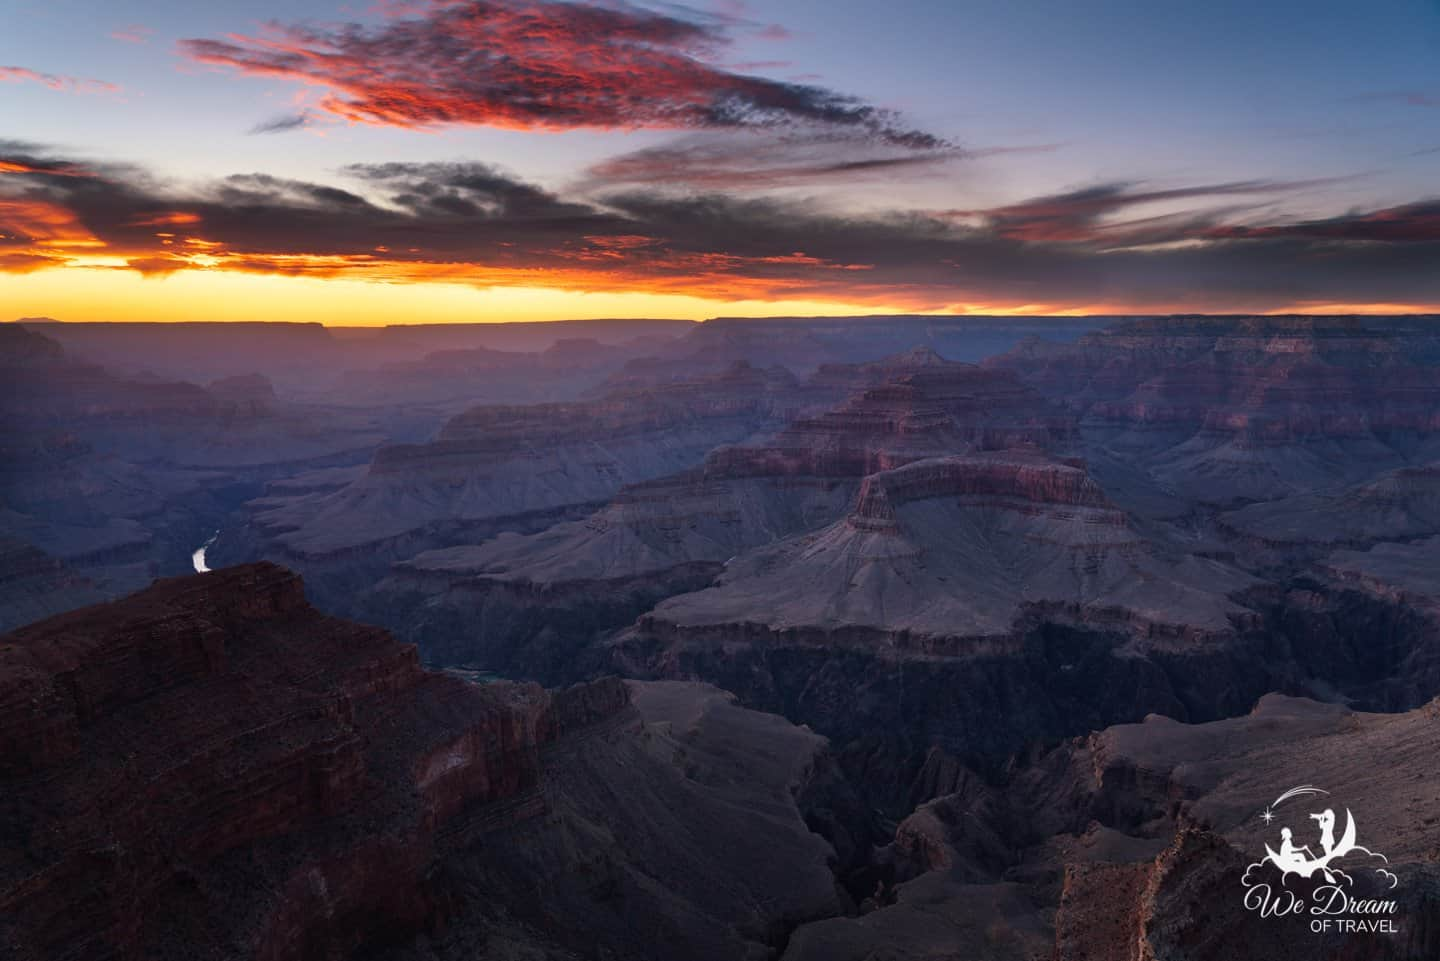 Ending a magical daytrip to the Grand Canyon with a colorful sunset.